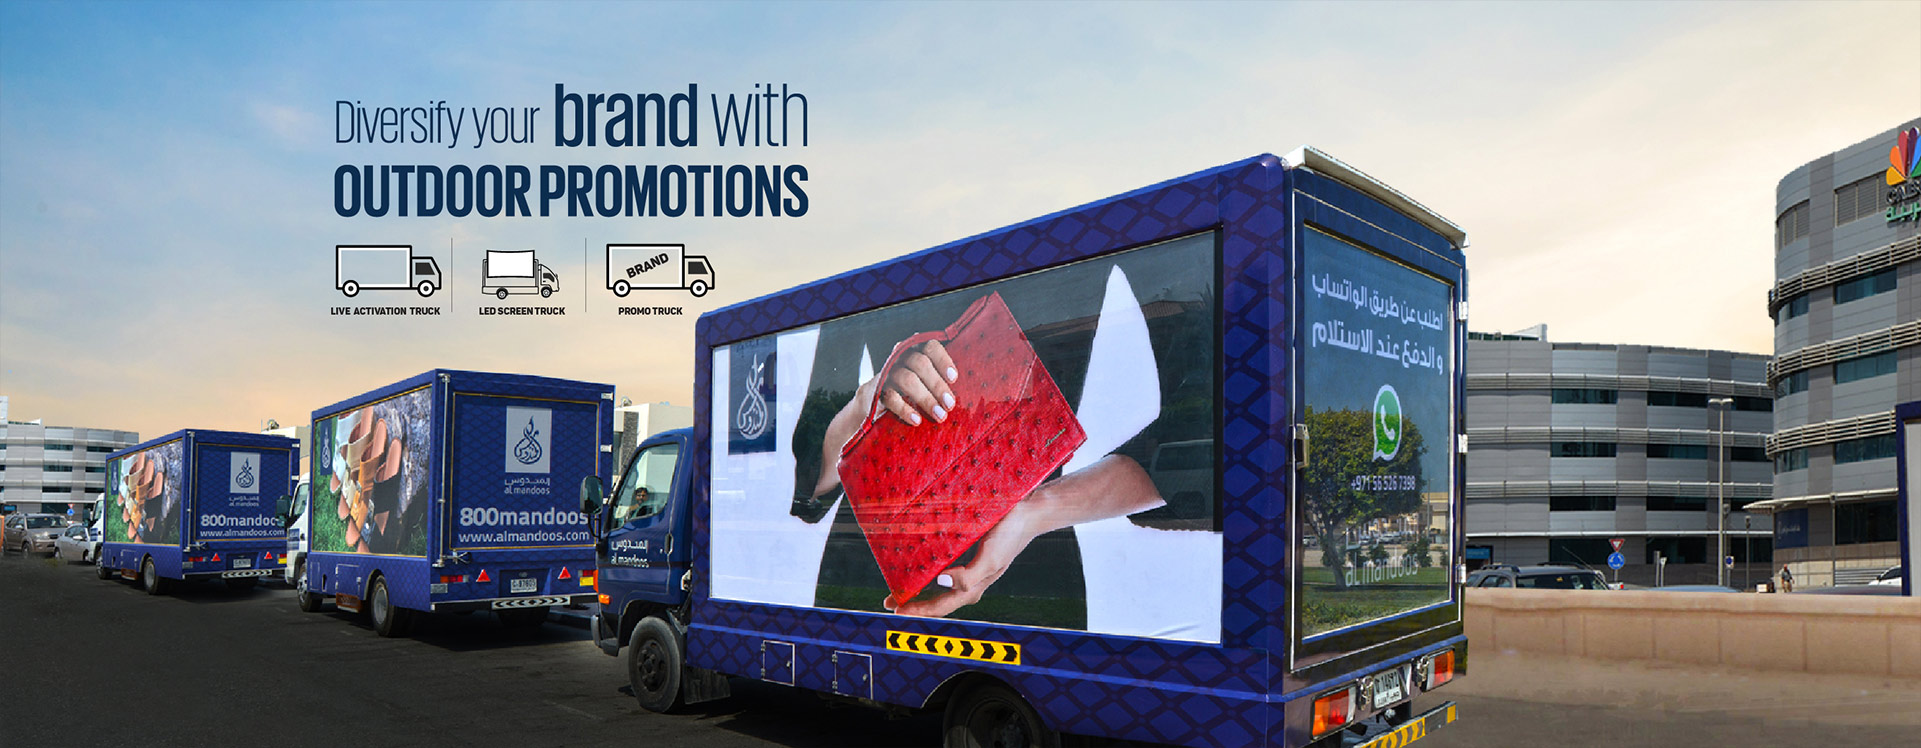 Mobile truck advertising in Dubai, UAE